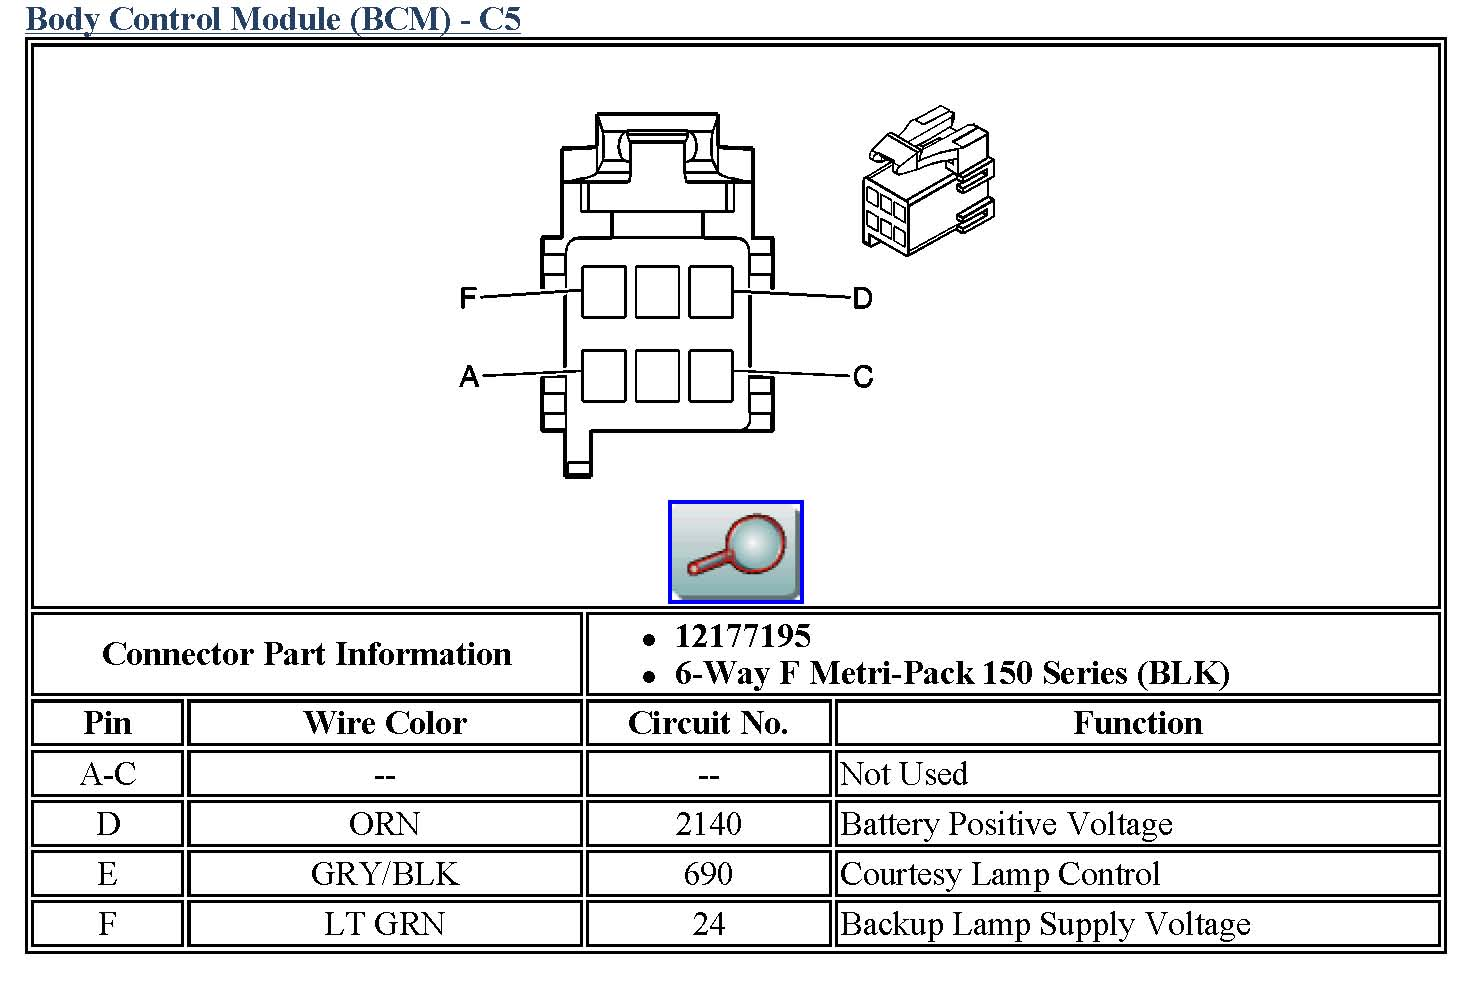 Bcm Basics 101 03 06 Fuse Diagram For 2004 Avalanche Body Control Module C5